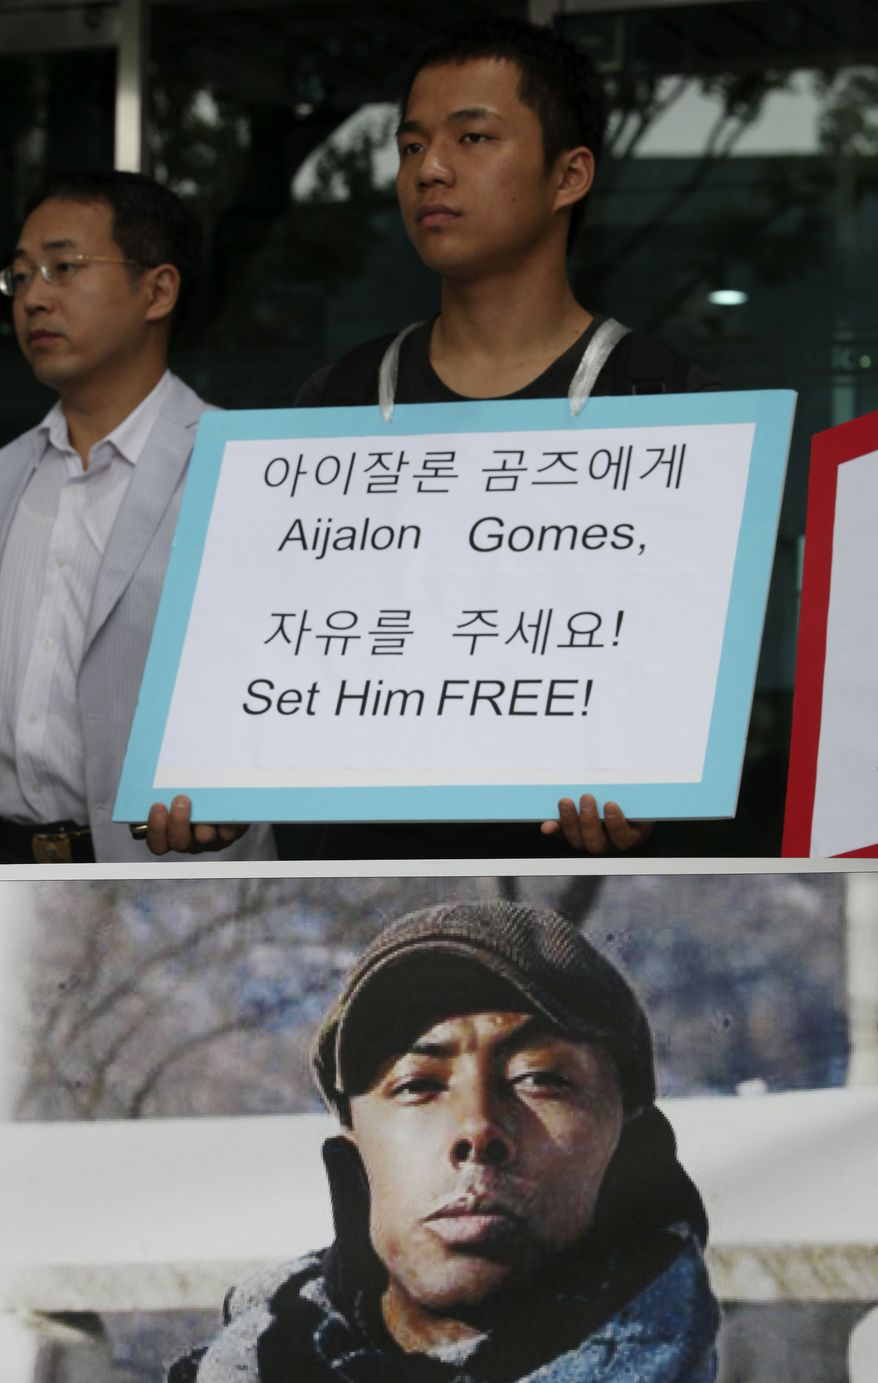 South Korean human rights activists participate in a rally demanding release of American Aijalon Mahli Gomes in North Korea, in front of the United Nations High Commissioner for Refugees Korea Representative Office in Seoul Monday, July 26, 2010. The rally marked six month after Mr. Gomes was arrested in North Korea on Jan. 25. (AP Photo/Ahn Young-joon)